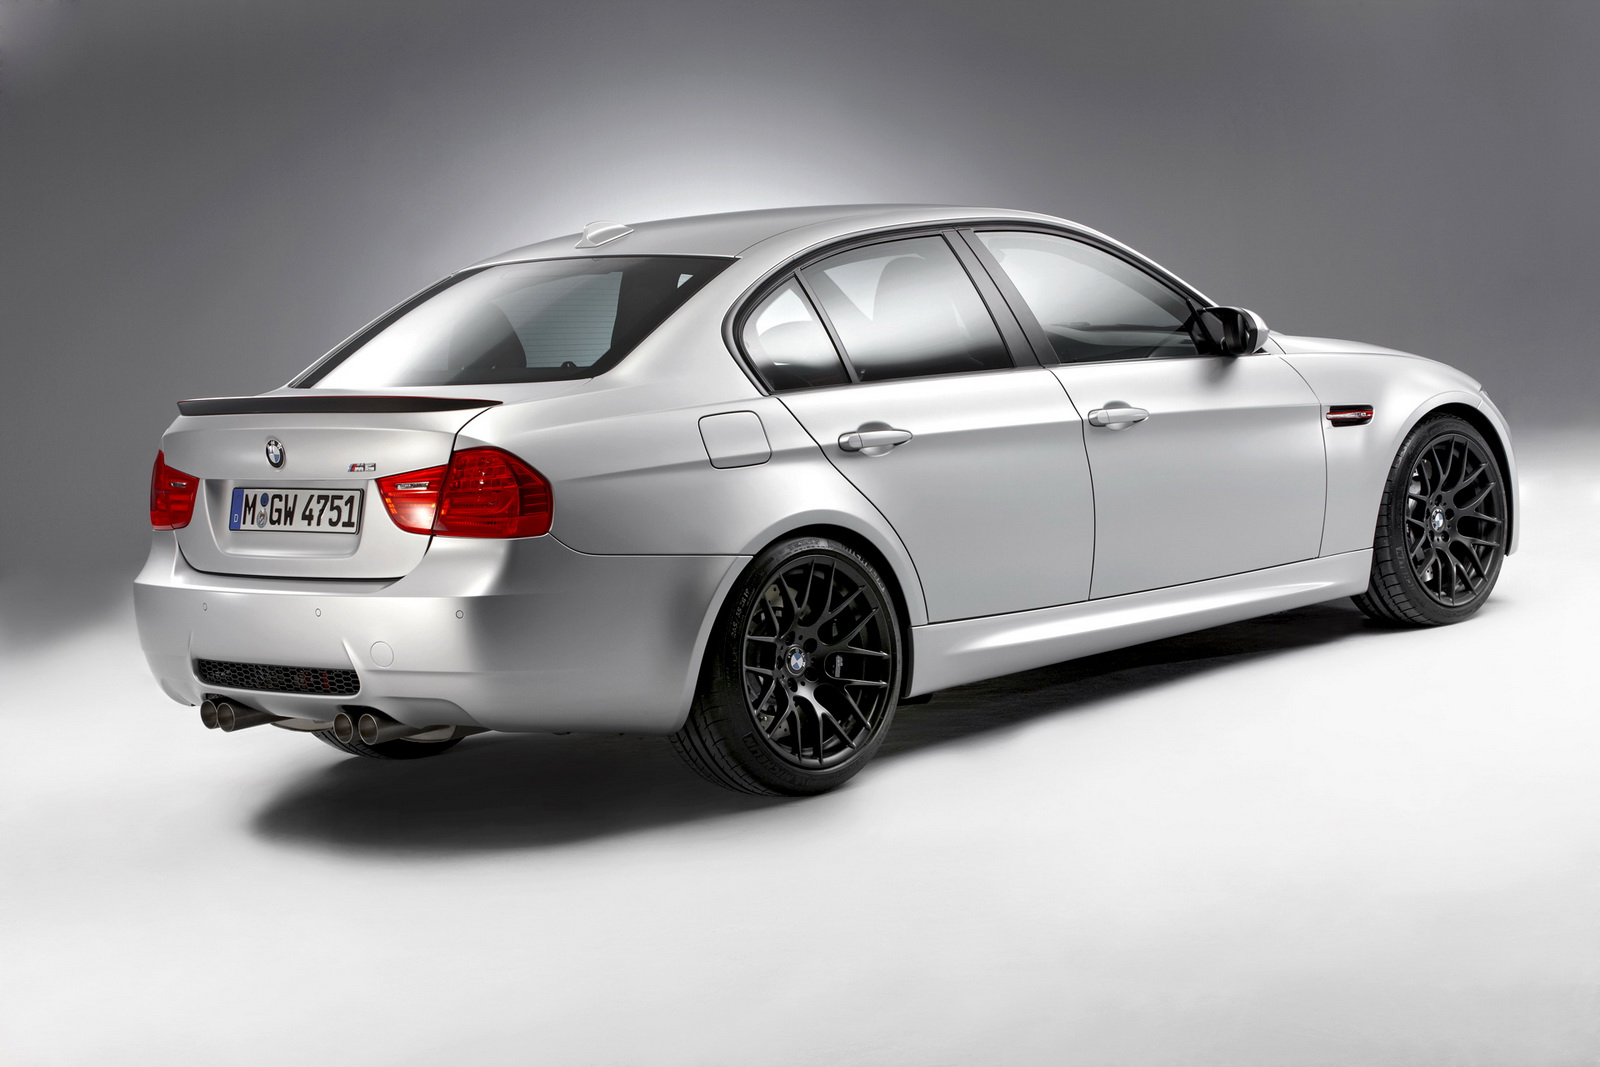 BMW M3 CRT   Limited edition high performance sports car from the